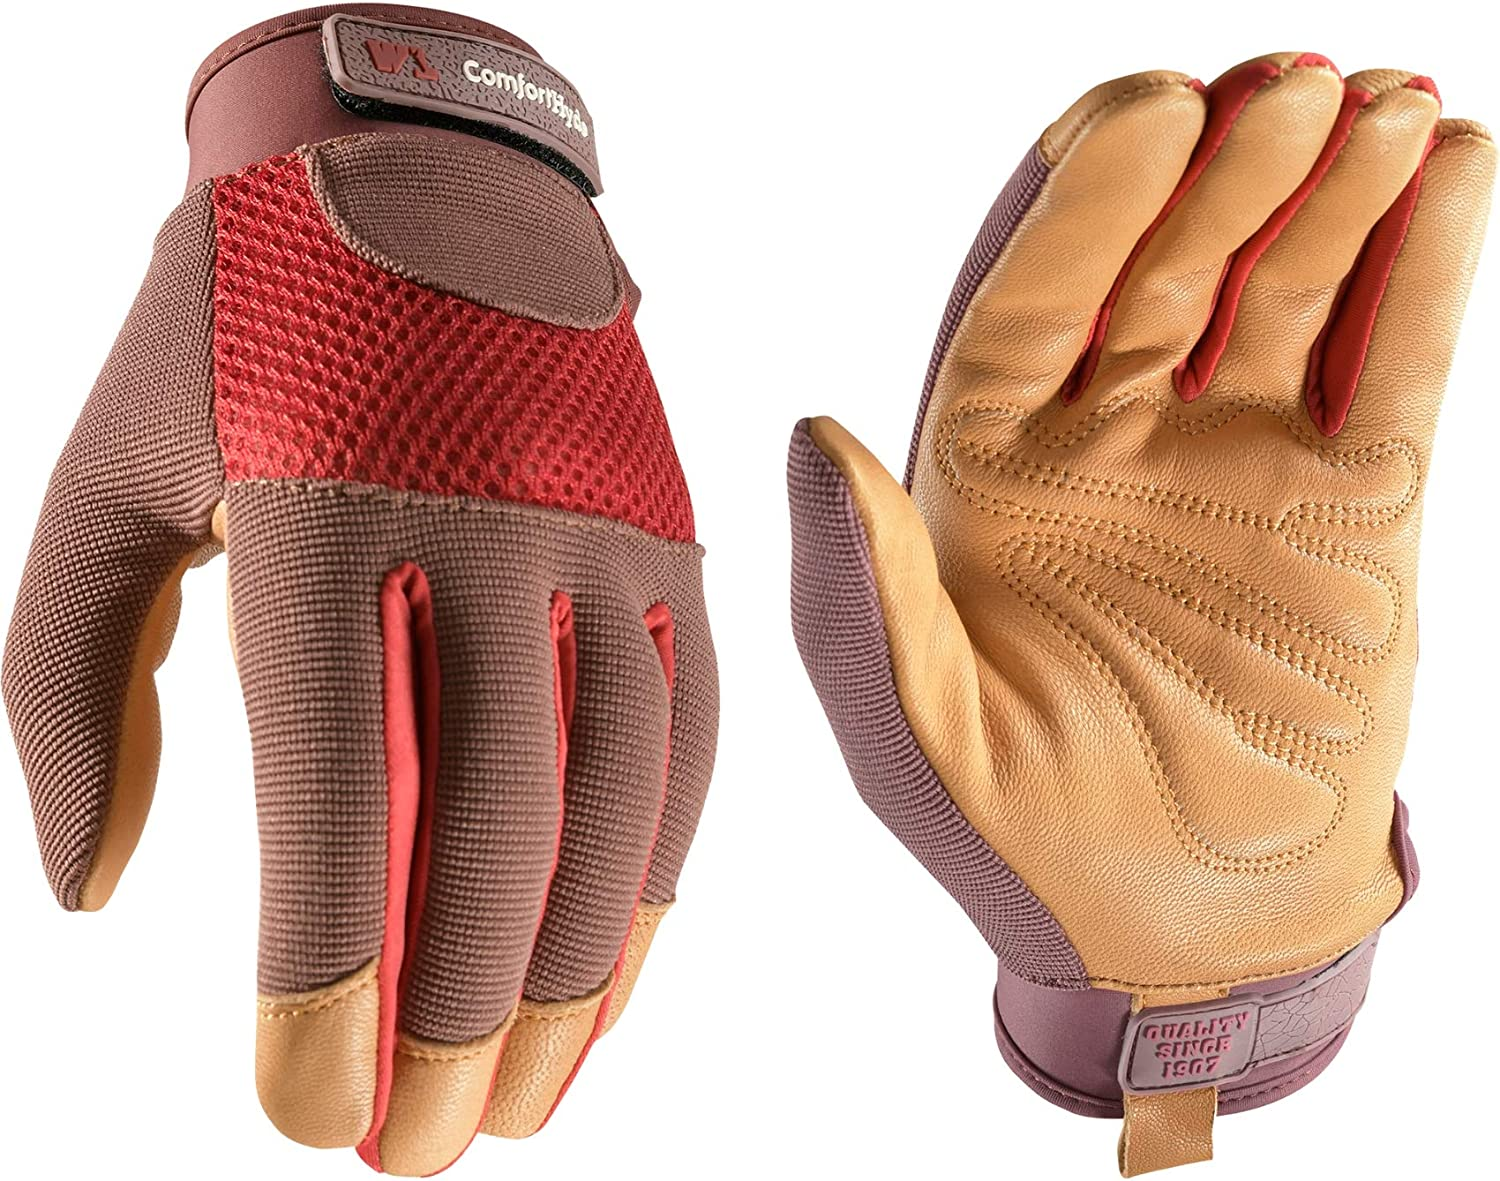 Women's Breathable ComfortHyde Leather At the price of surprise Daily bargain sale Hybrid Gardening Glo Work